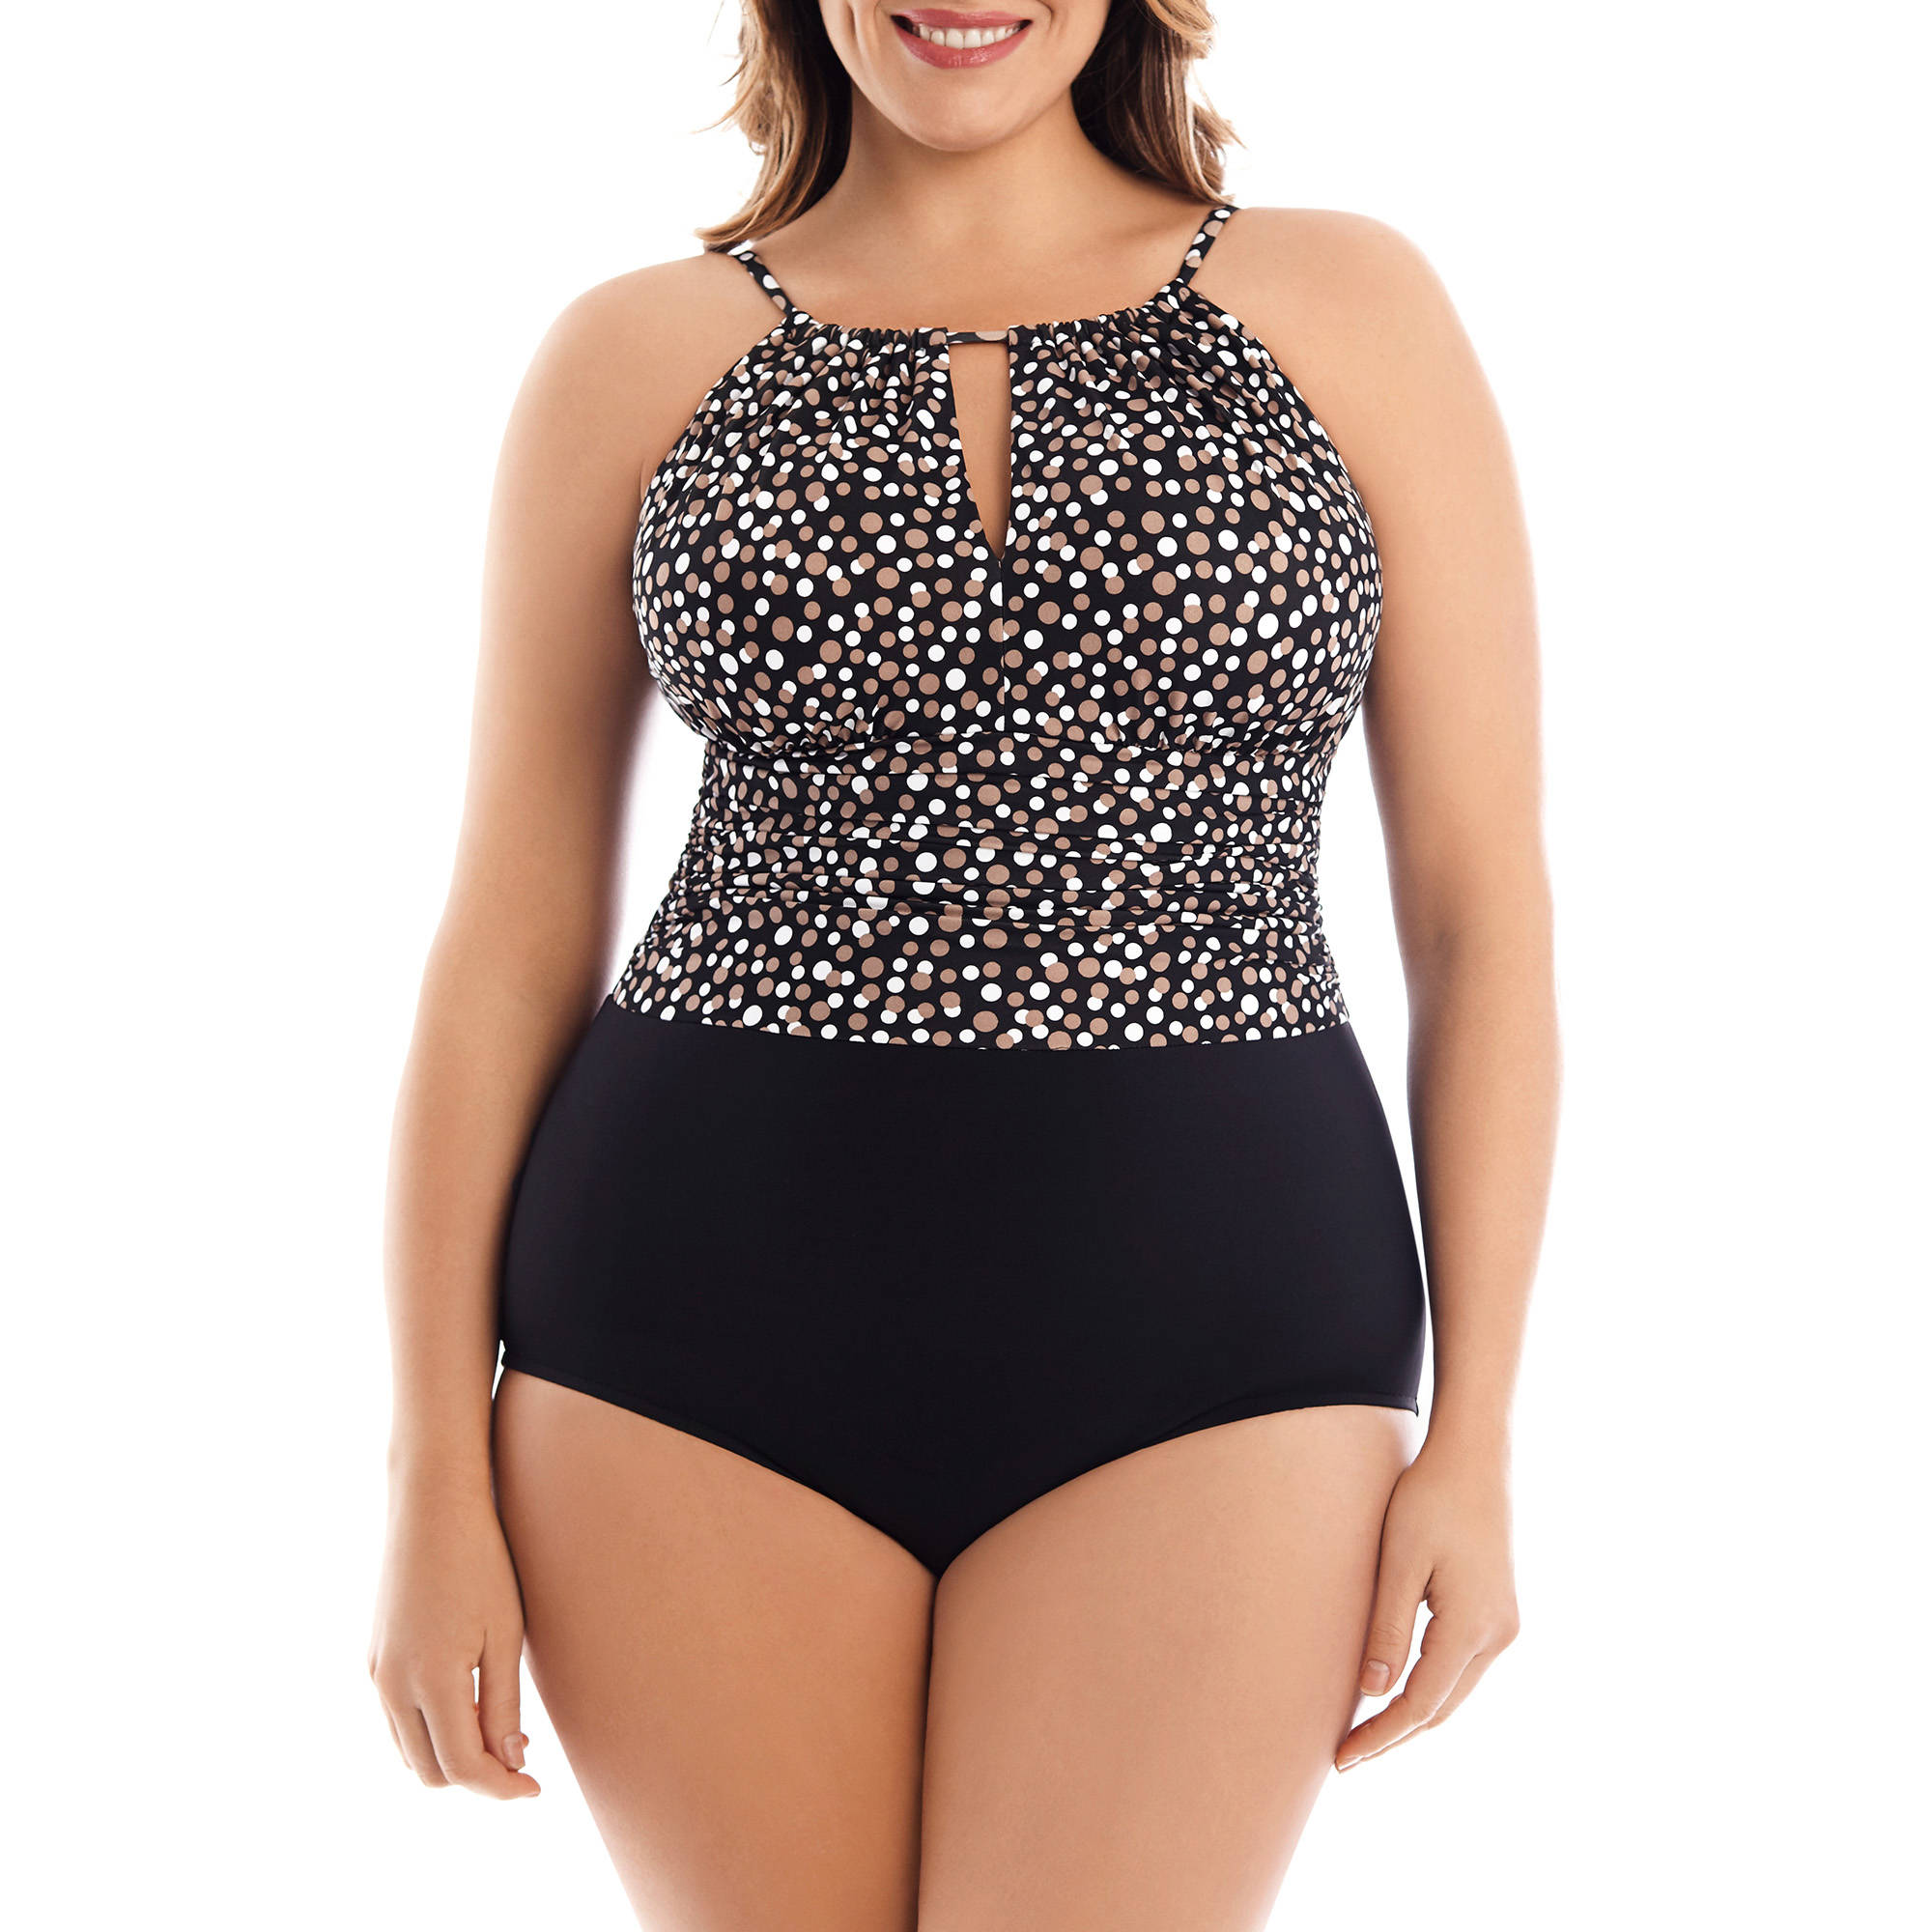 Women's Plus-Size Slimming High-Neck Halter One-Piece Swimsuit